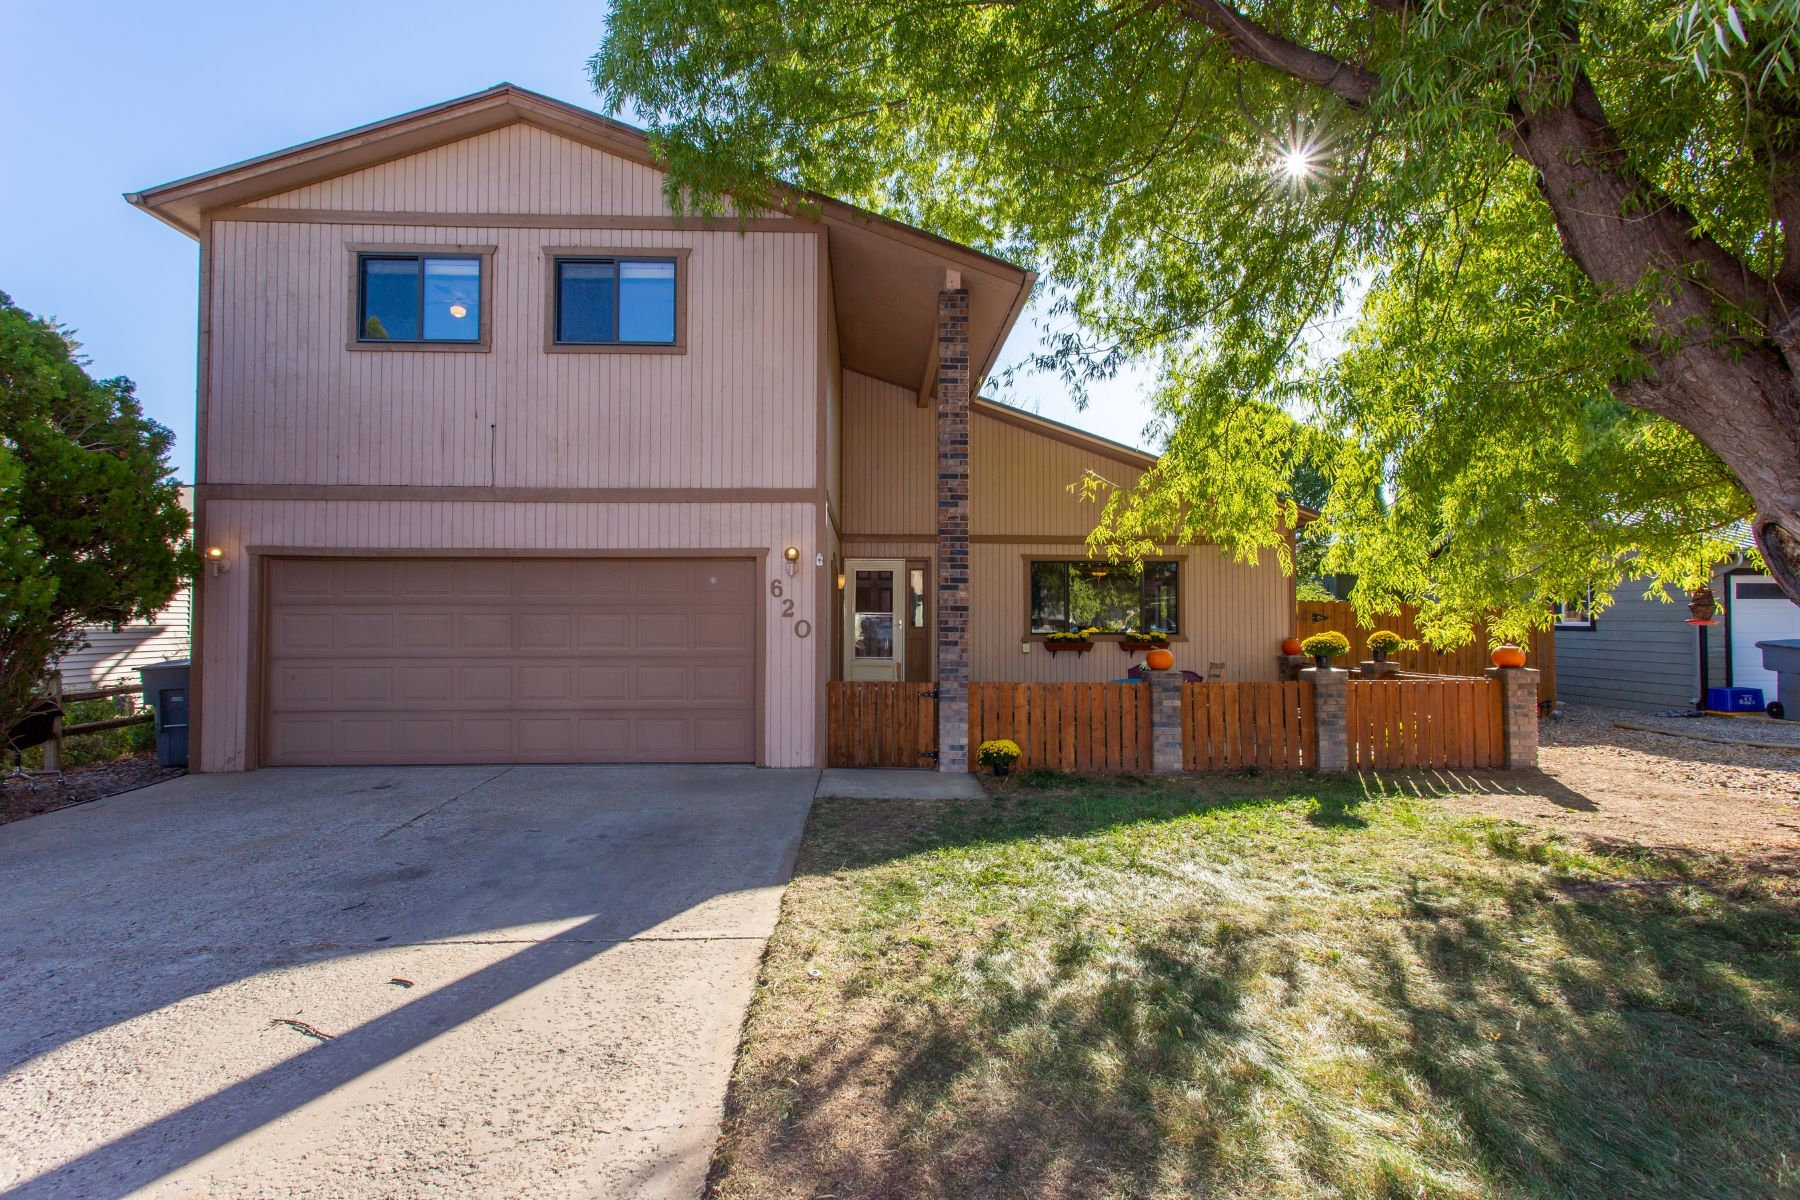 Single Family Home for Active at SPACIOUS AND AFFORDABLE! 620 Fairway Avenue Rifle, Colorado 81650 United States